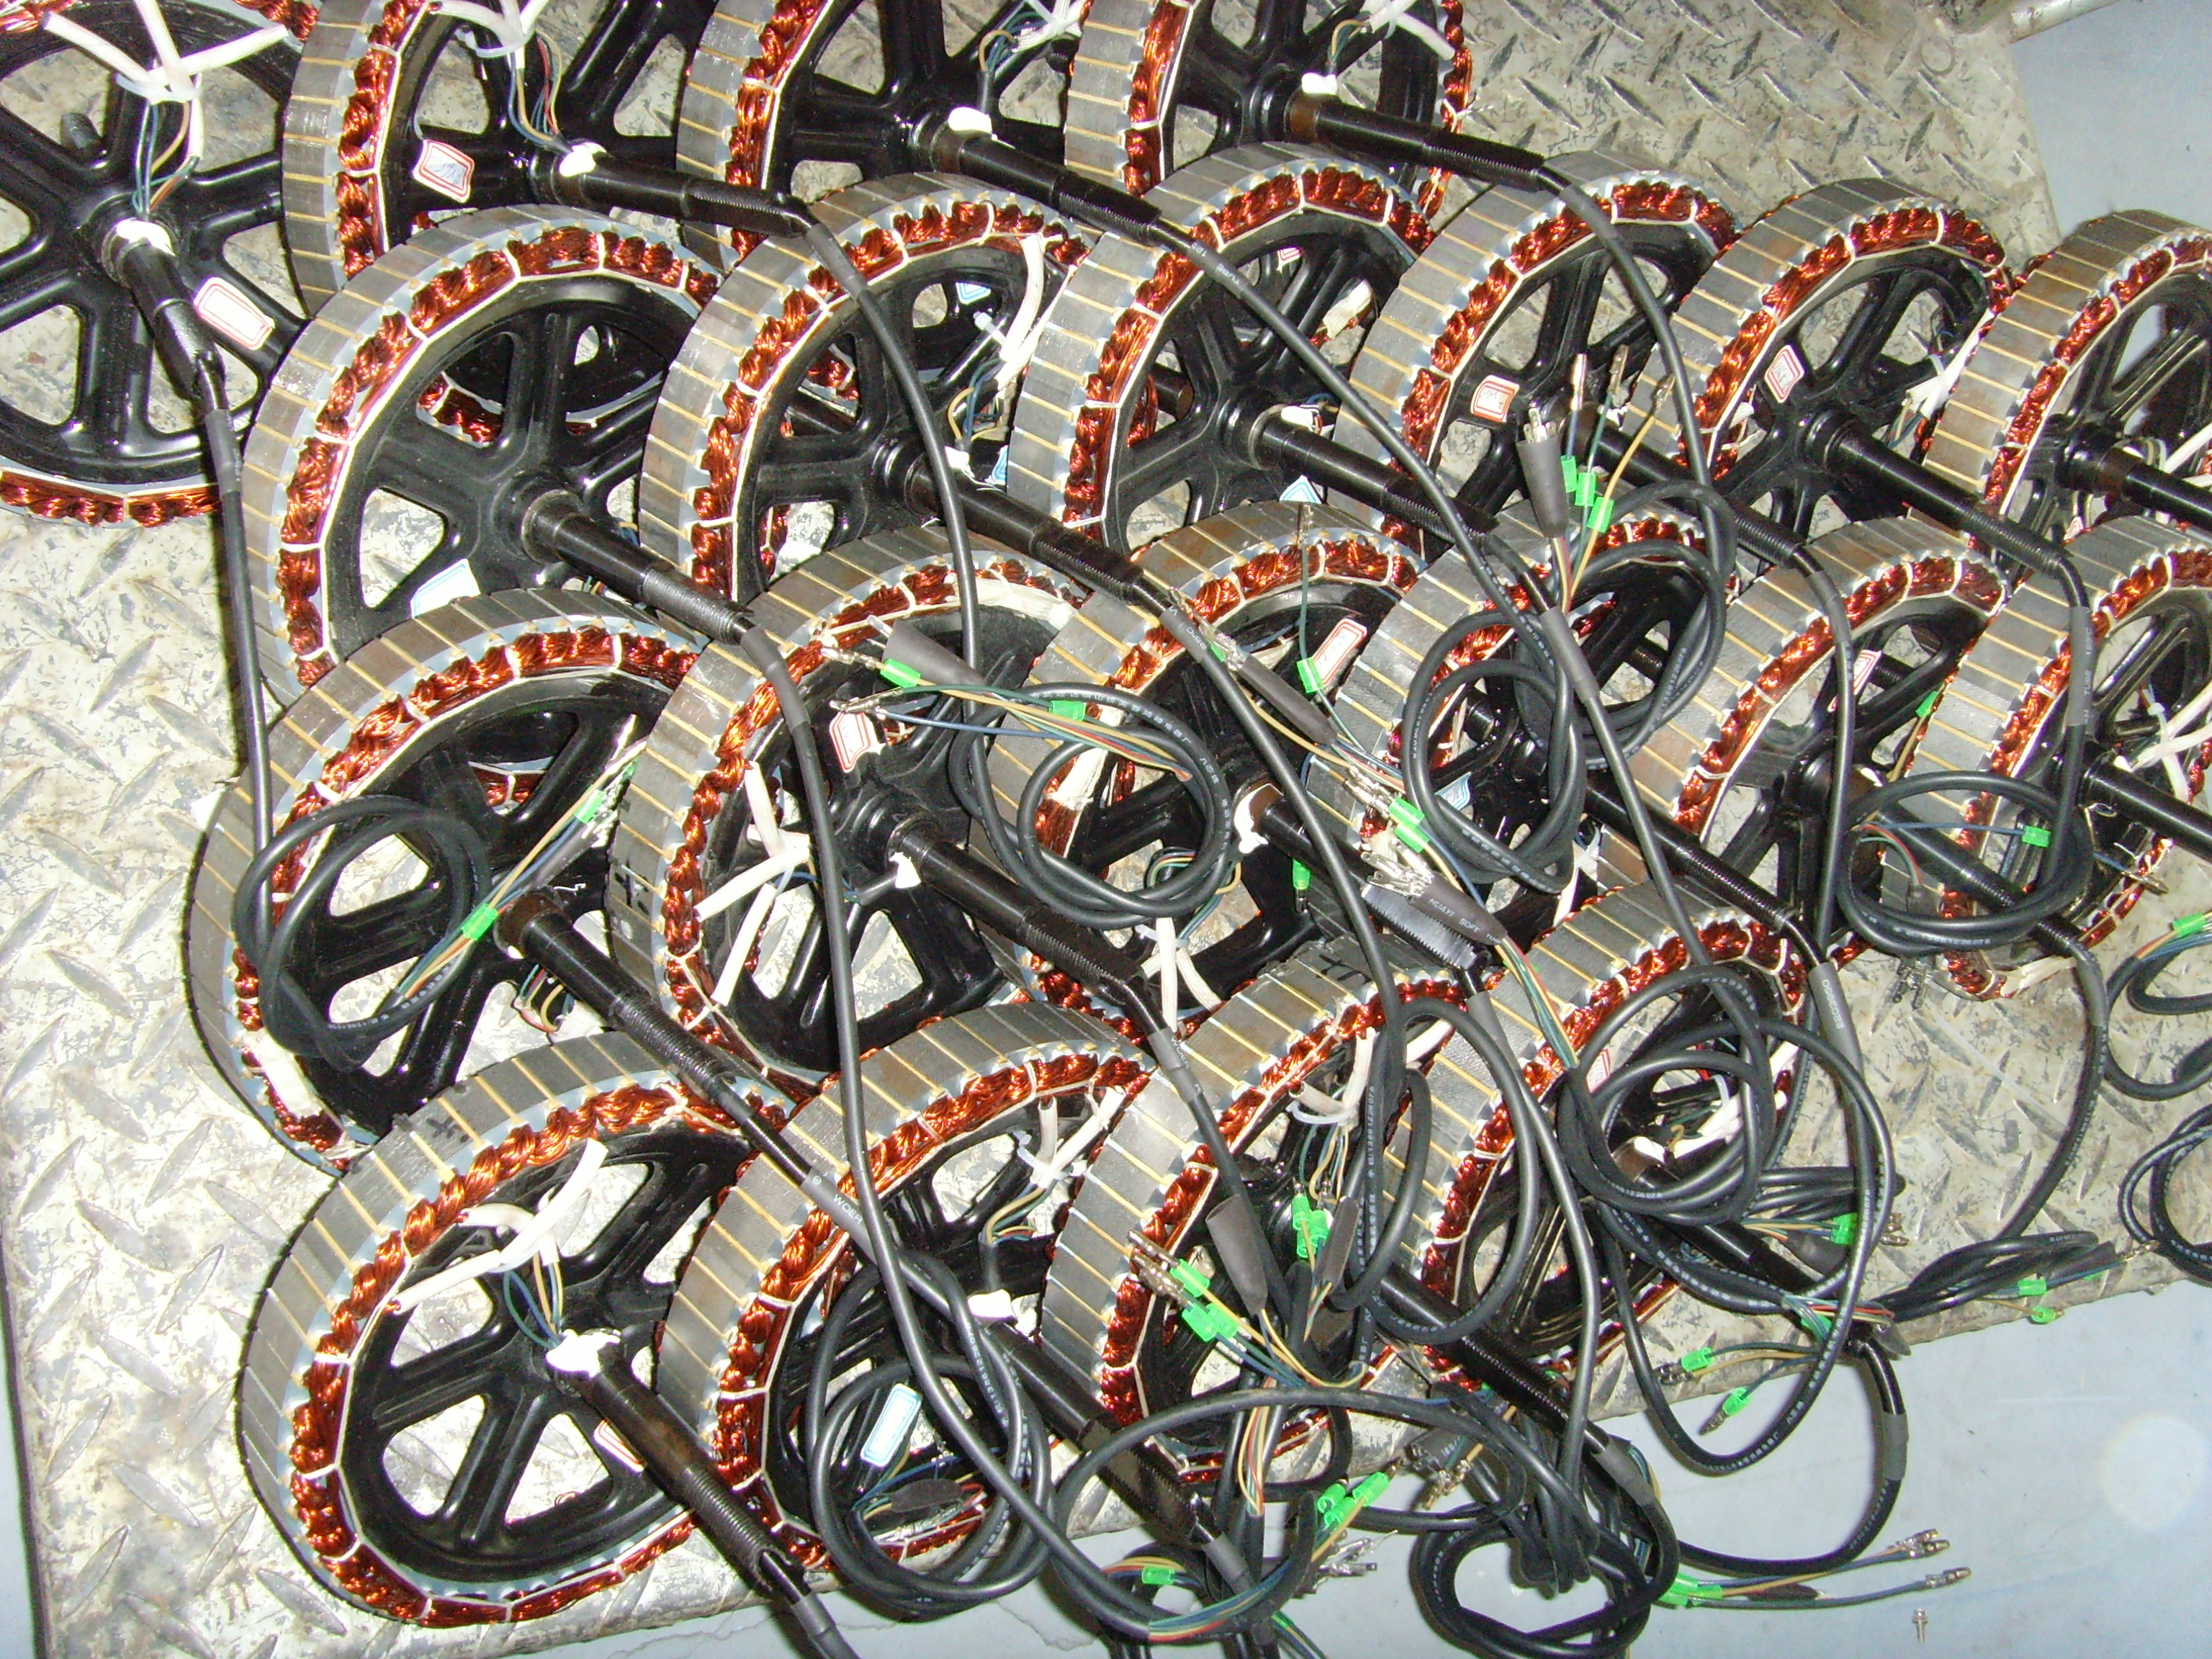 E bike hub motor factory tour in china electricbike com for How to make an electric bike with a starter motor